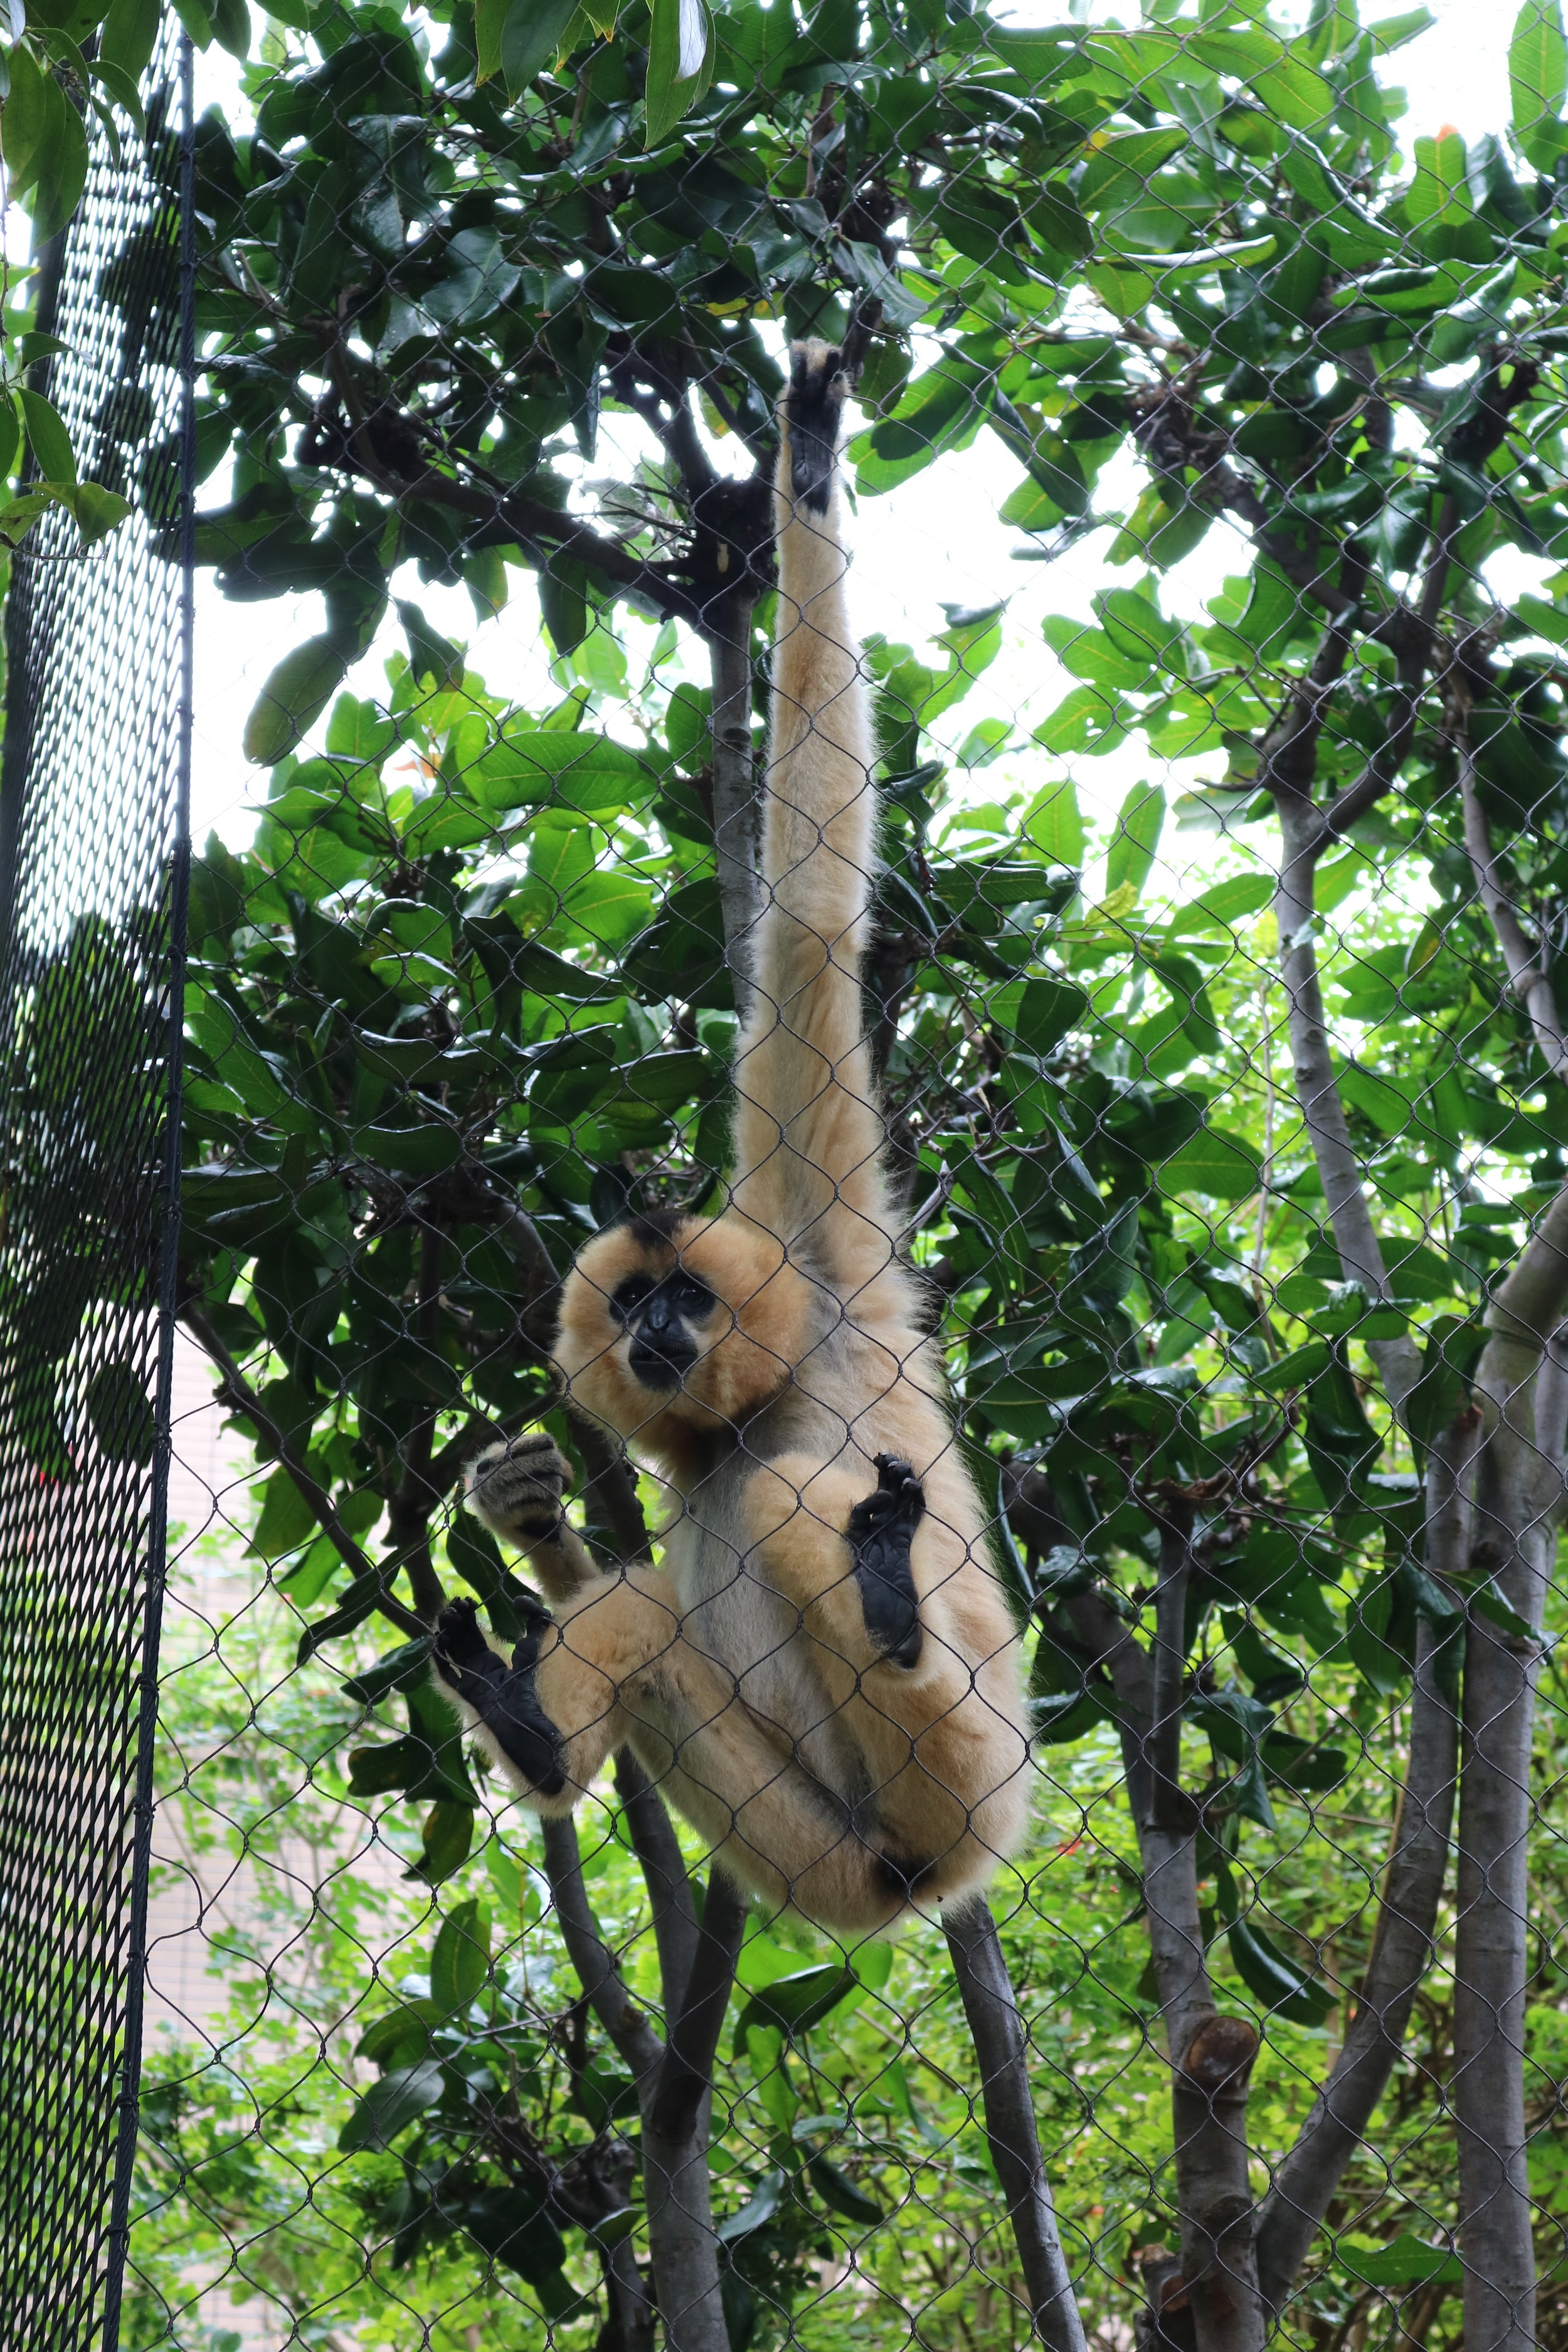 monkey-hanging-san-diego-zoo